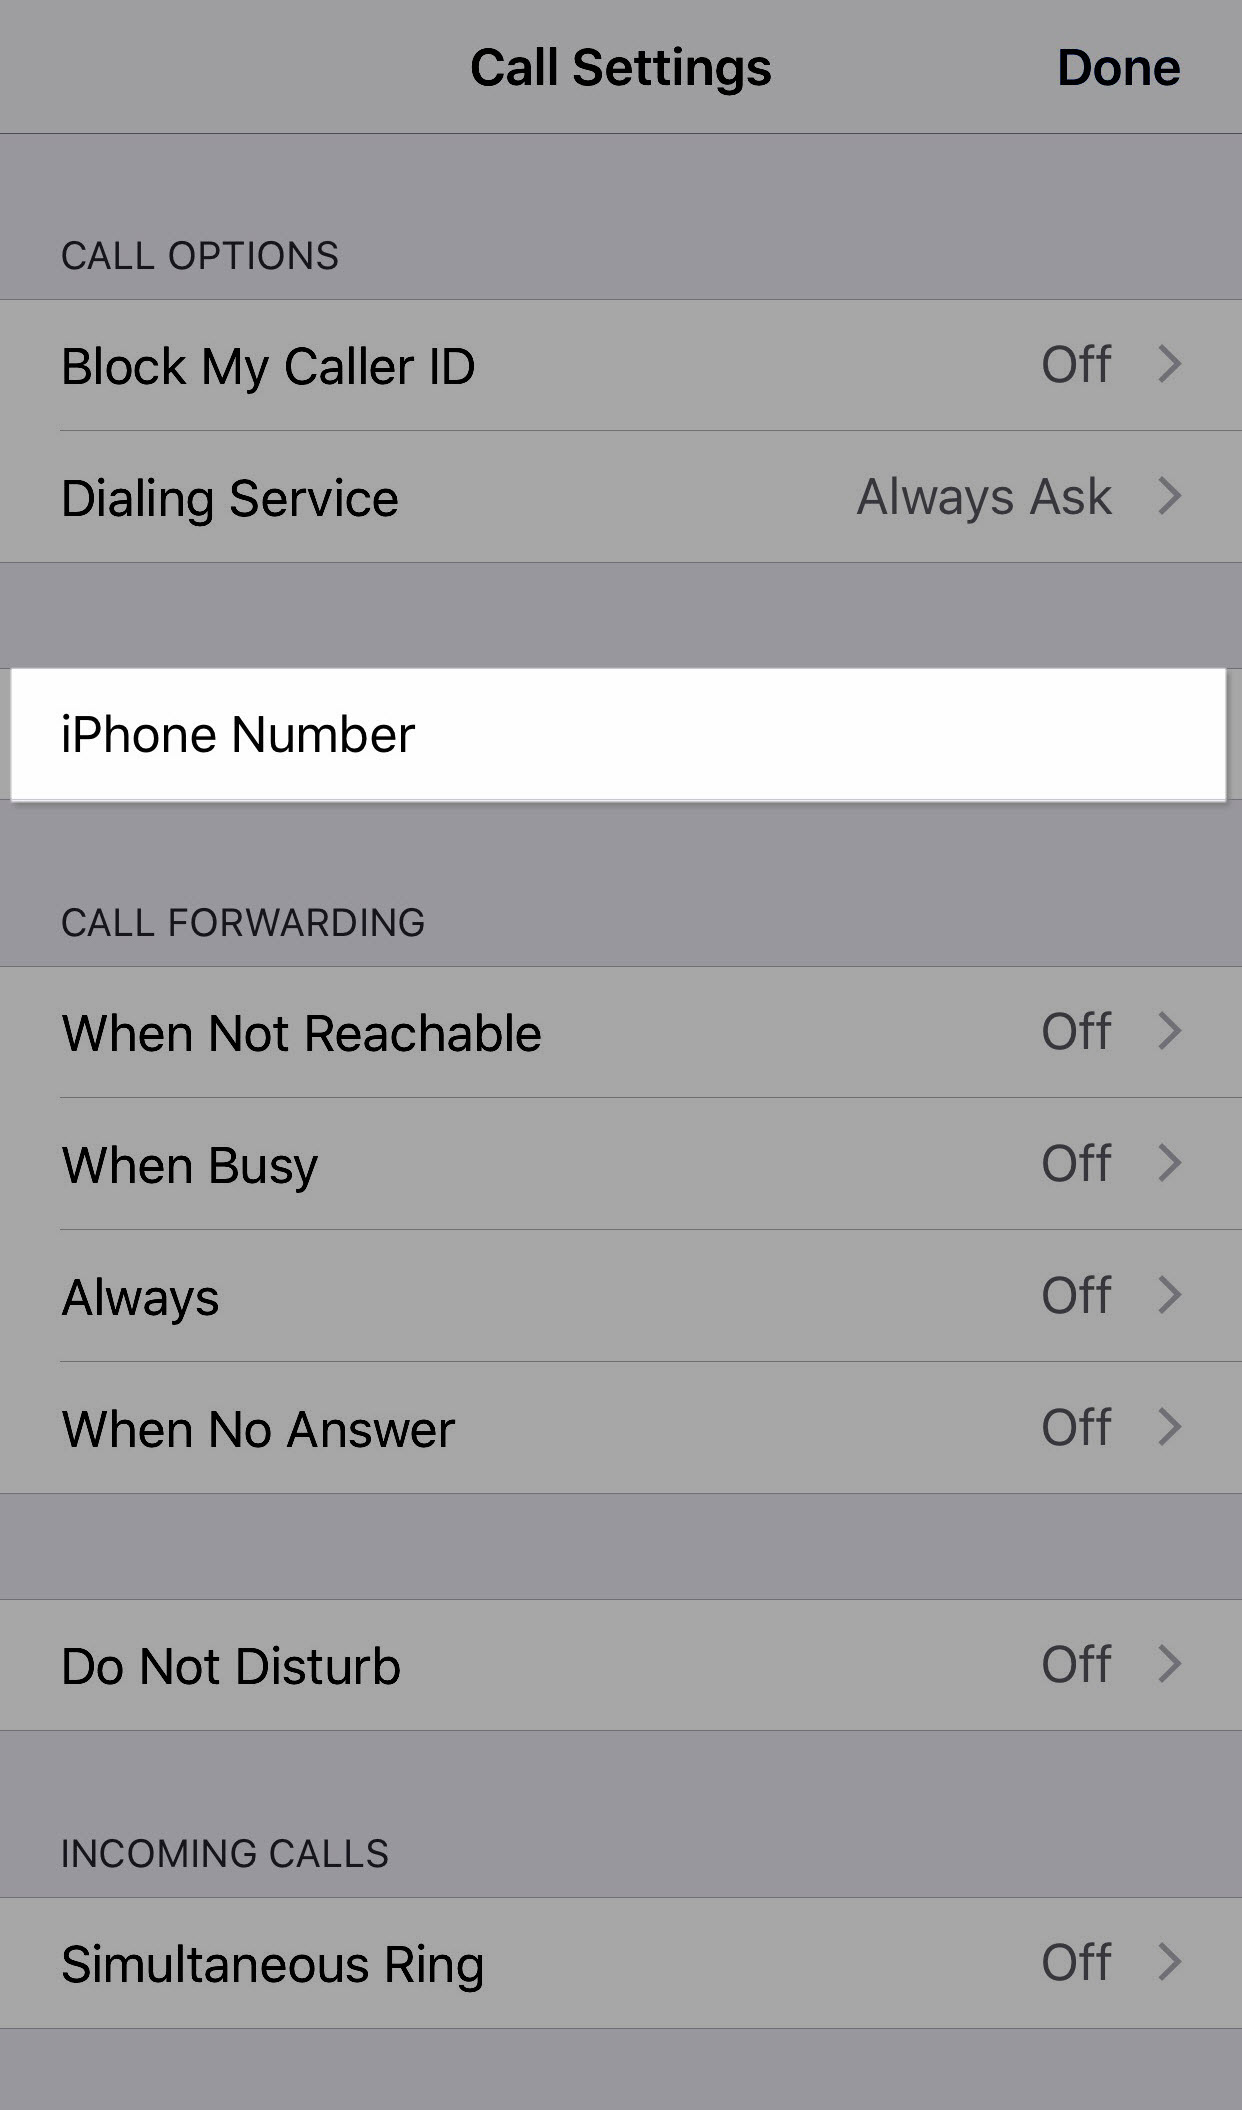 iPhone number is highlighted under call settings menu - Image opens in full resolution in a new tab